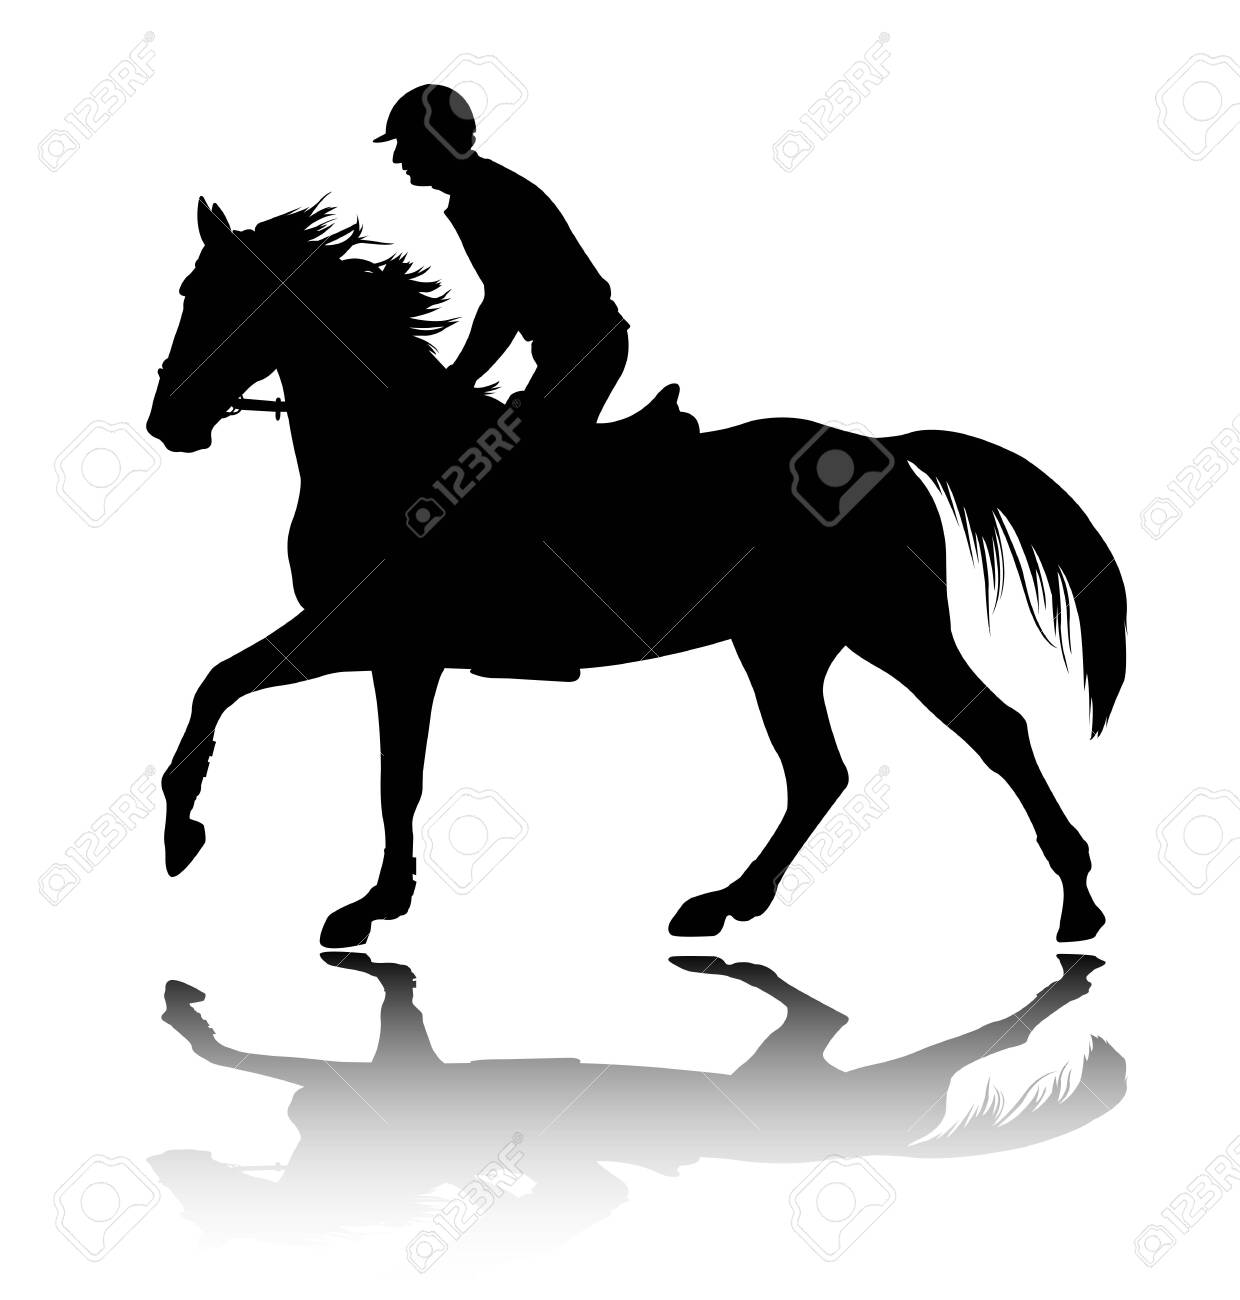 High Quality Silhouette Of Young Man Riding Horse Vector Royalty Free Cliparts Vectors And Stock Illustration Image 134616871